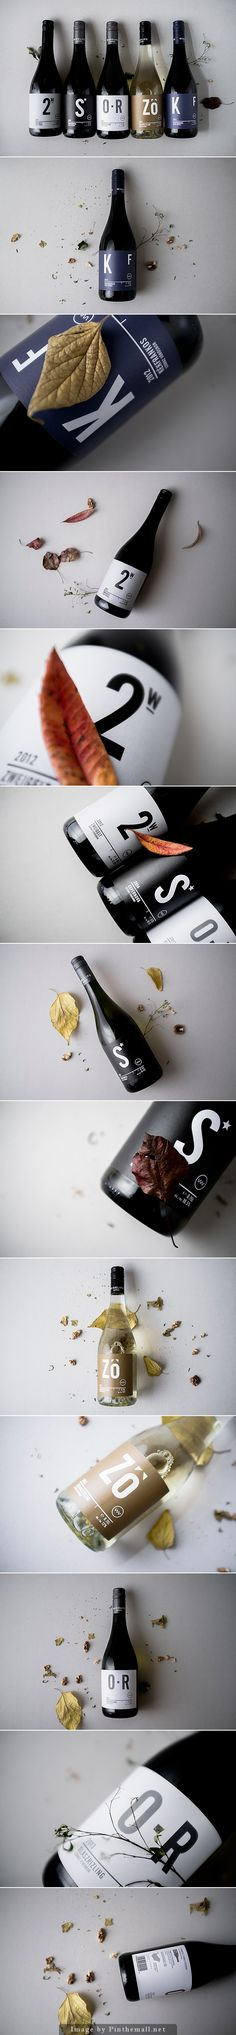 Winelife #wine PD #packaging #label